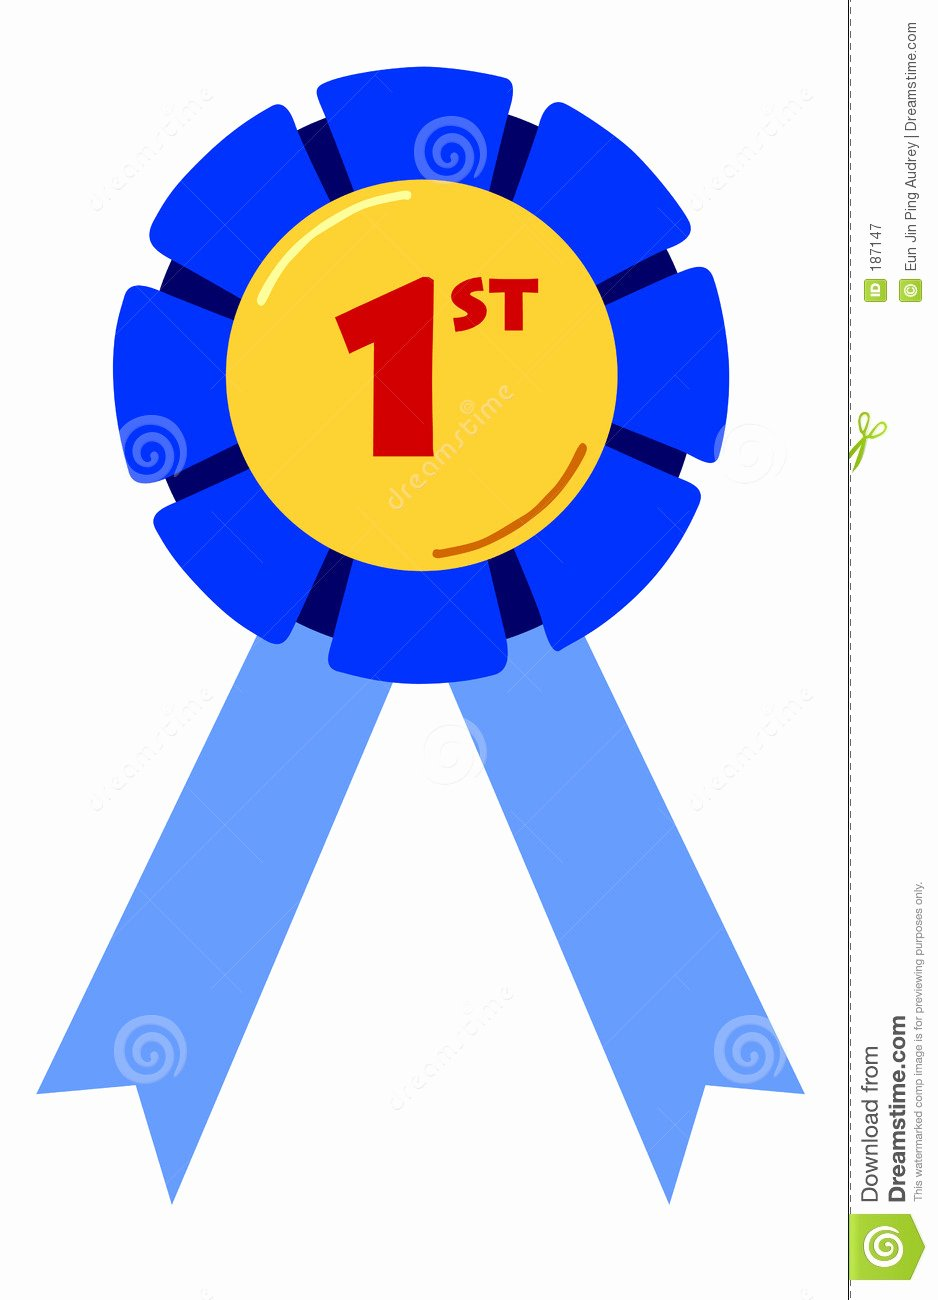 Printable 1st 2nd 3rd Place Ribbons Awesome First Placing Ribbon Stock Illustration Illustration Of